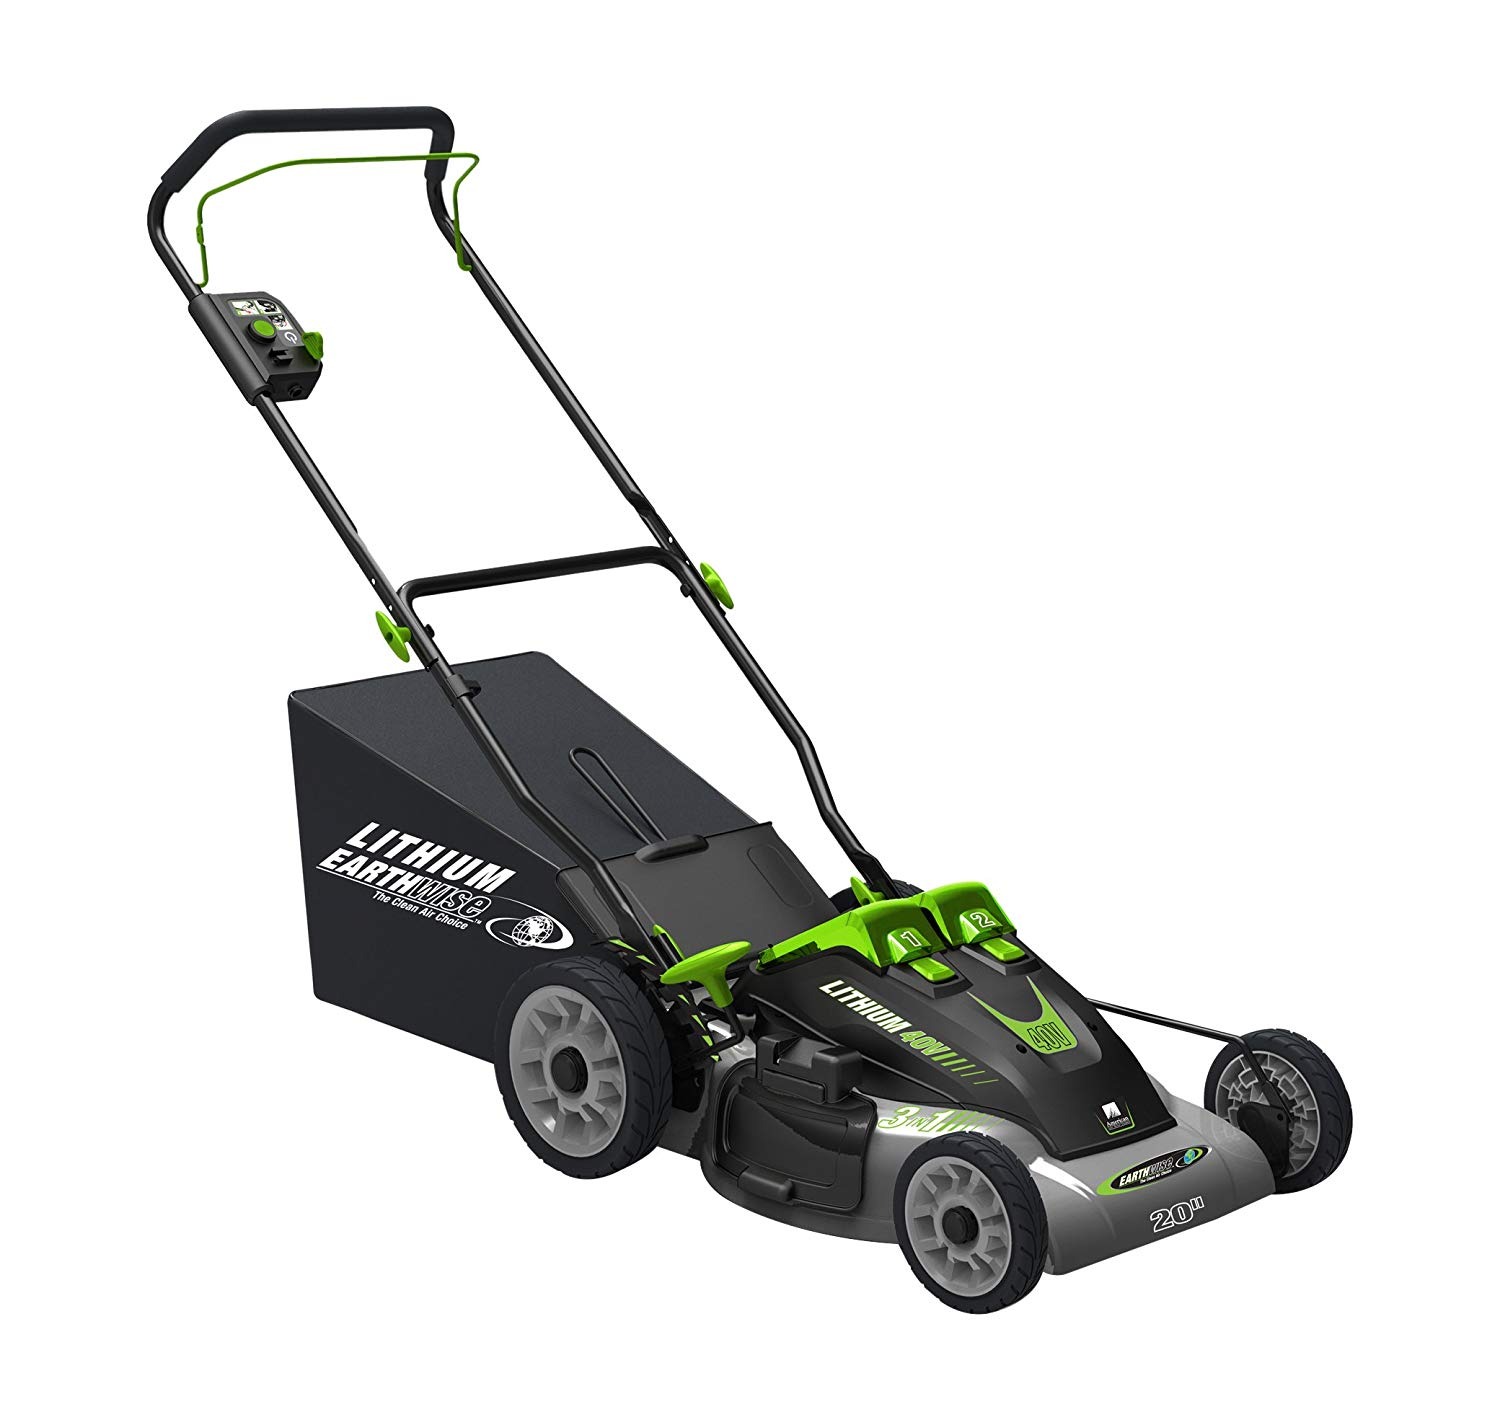 Best Lawn Mowers 2020.5 Best Battery Powered Cordless Lawn Mowers 2020 Going To